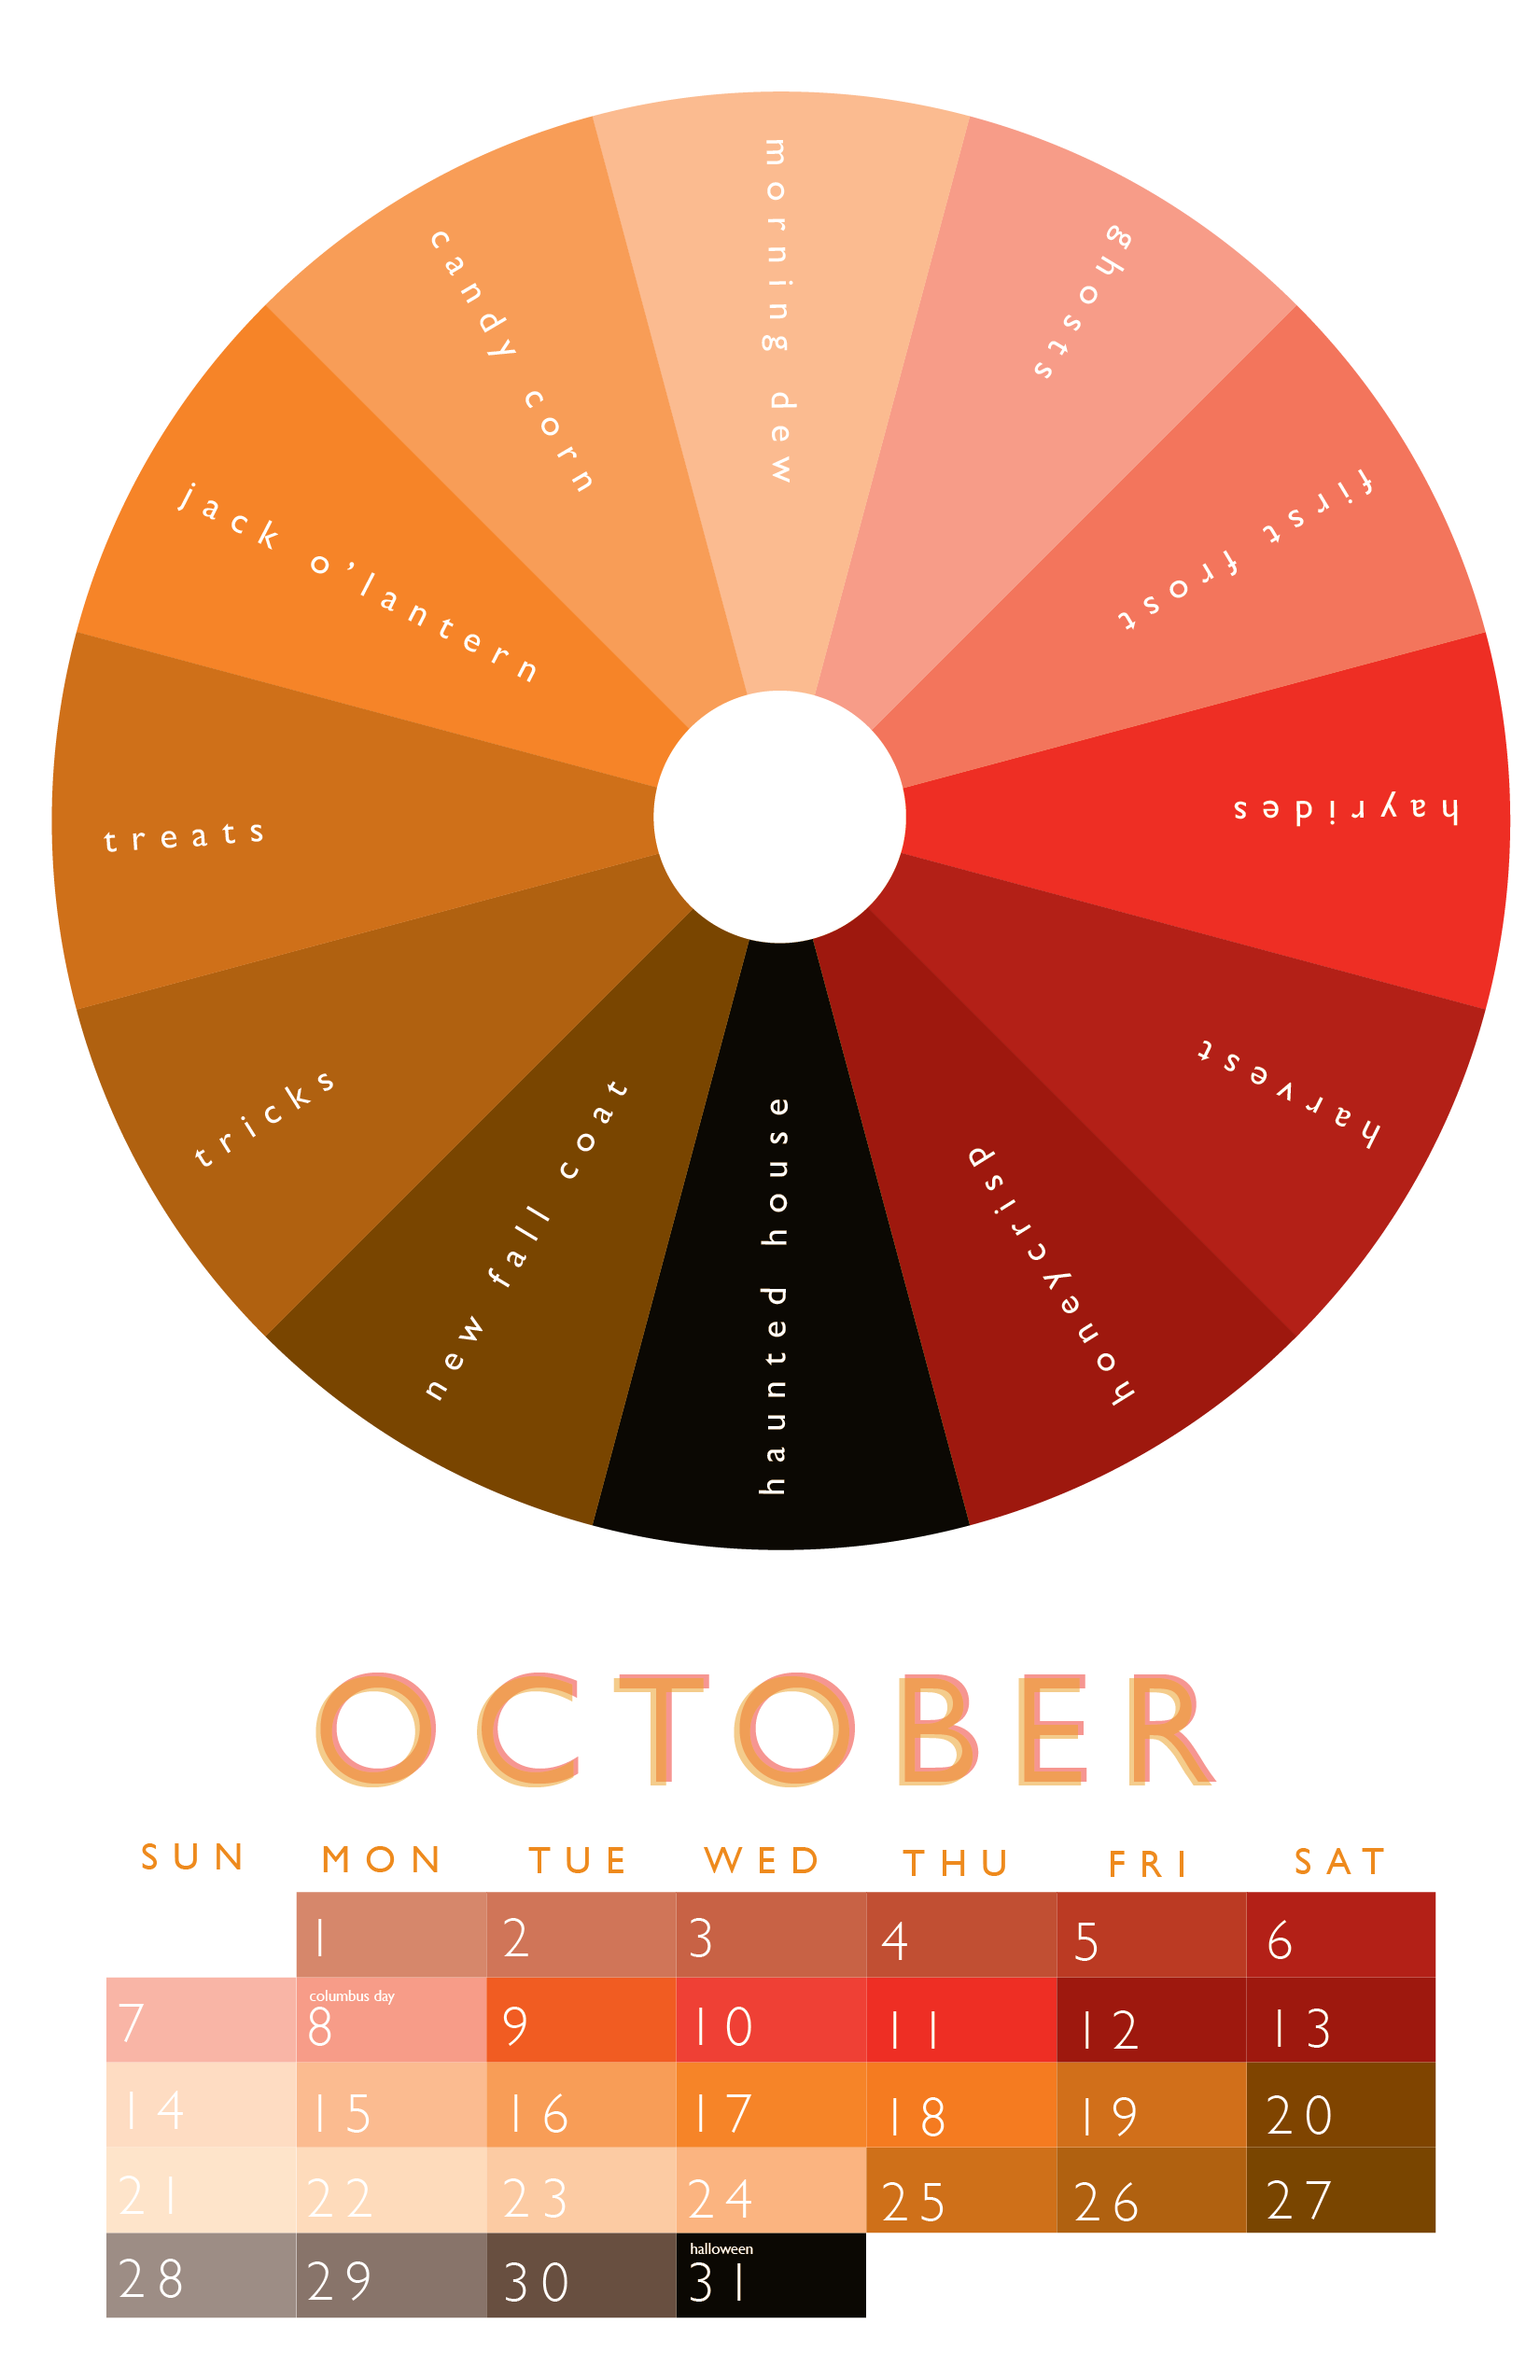 october color wheel 2012 calendar in 2018 pinterest